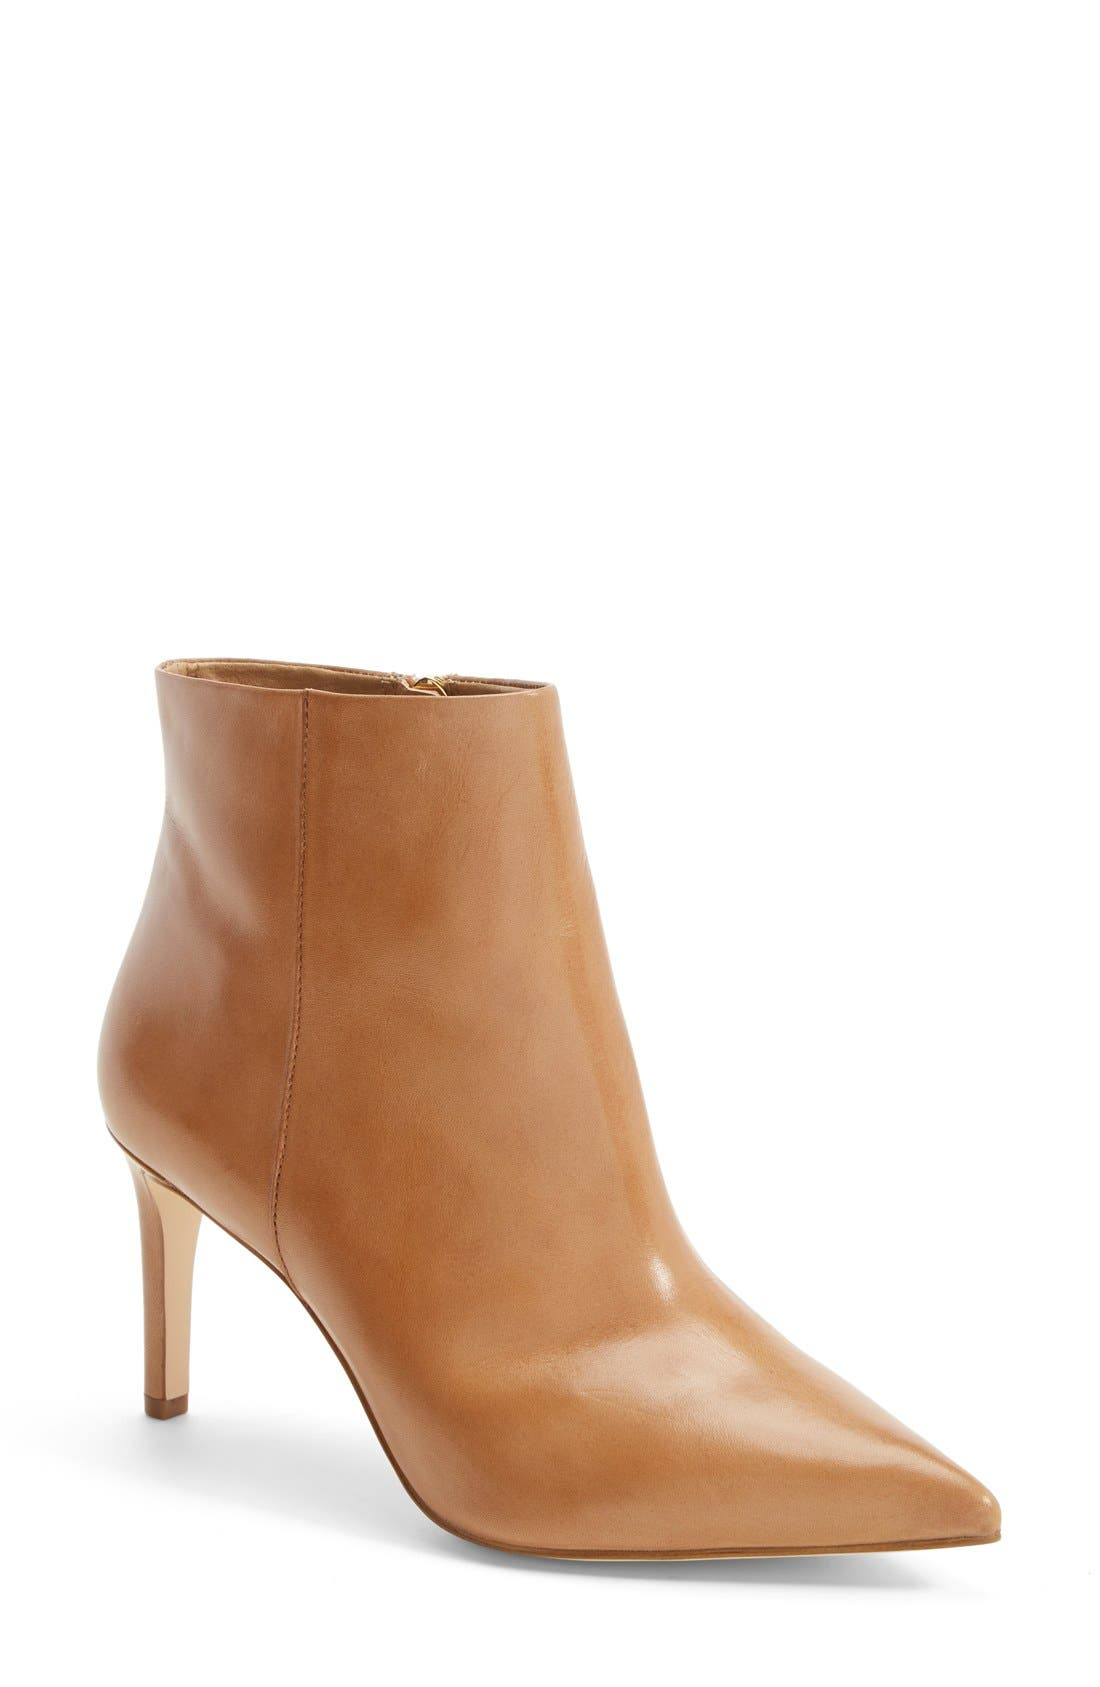 Alternate Image 1 Selected - Sam Edelman 'Karen' Pointy Toe Bootie (Women)